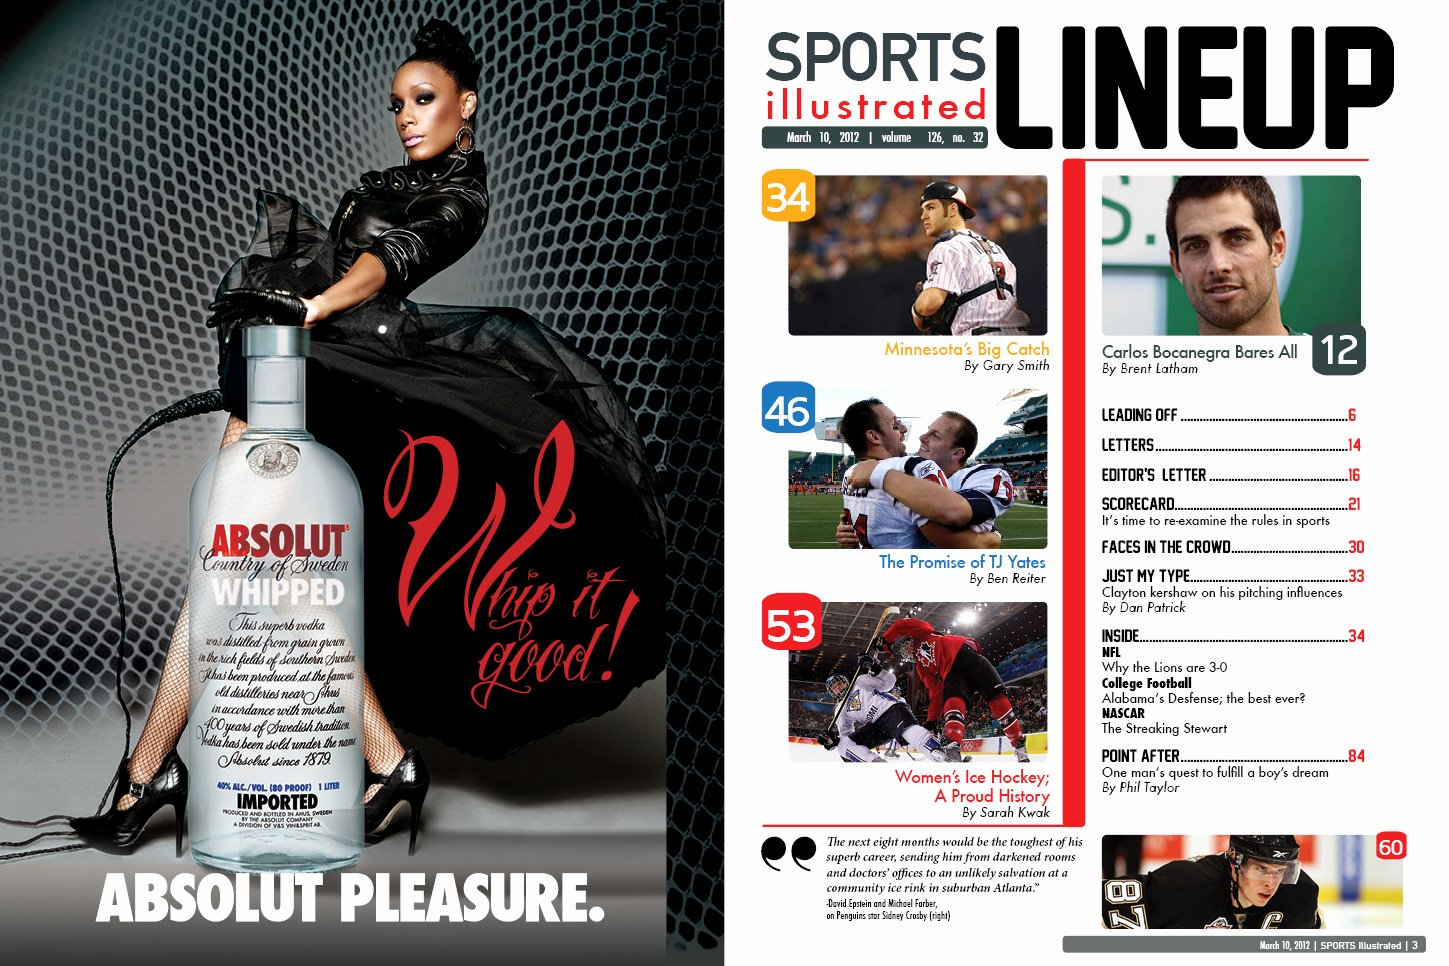 Sports Illustrated Templates Inspirational Art From the Chasm Publication Design Magazine Re Design